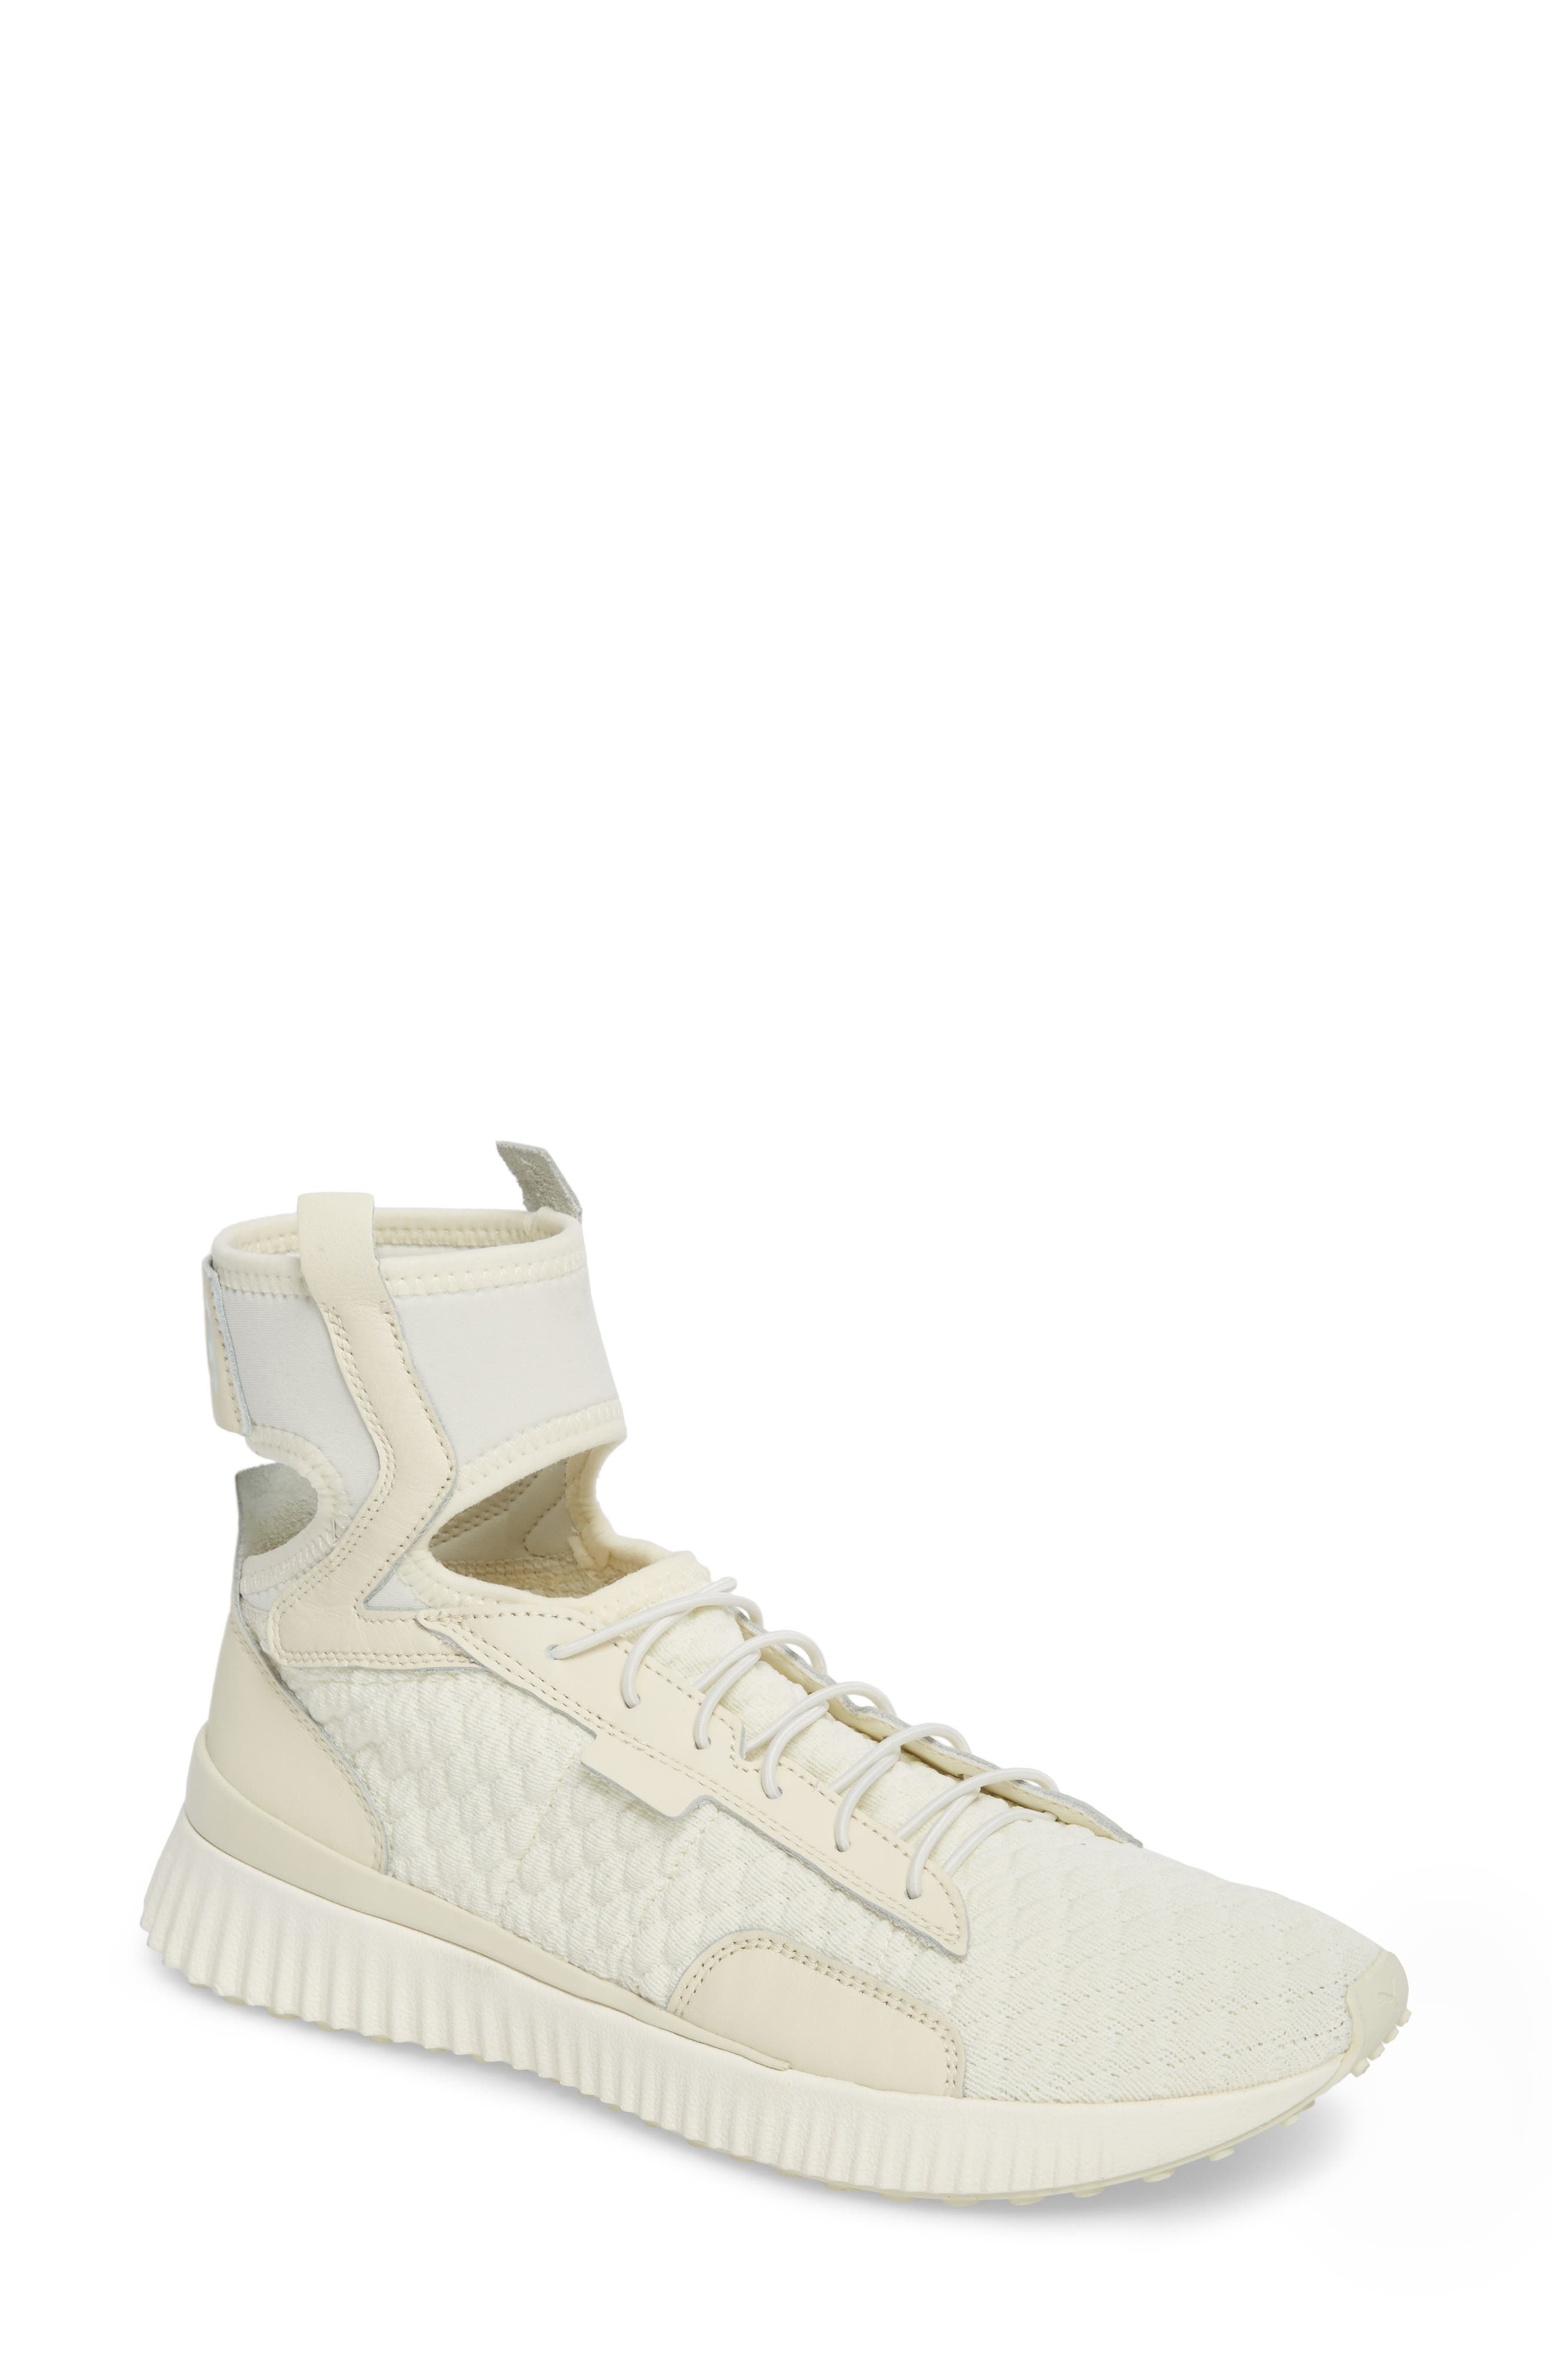 FENTY PUMA by Rihanna High Top Sneaker (Women)